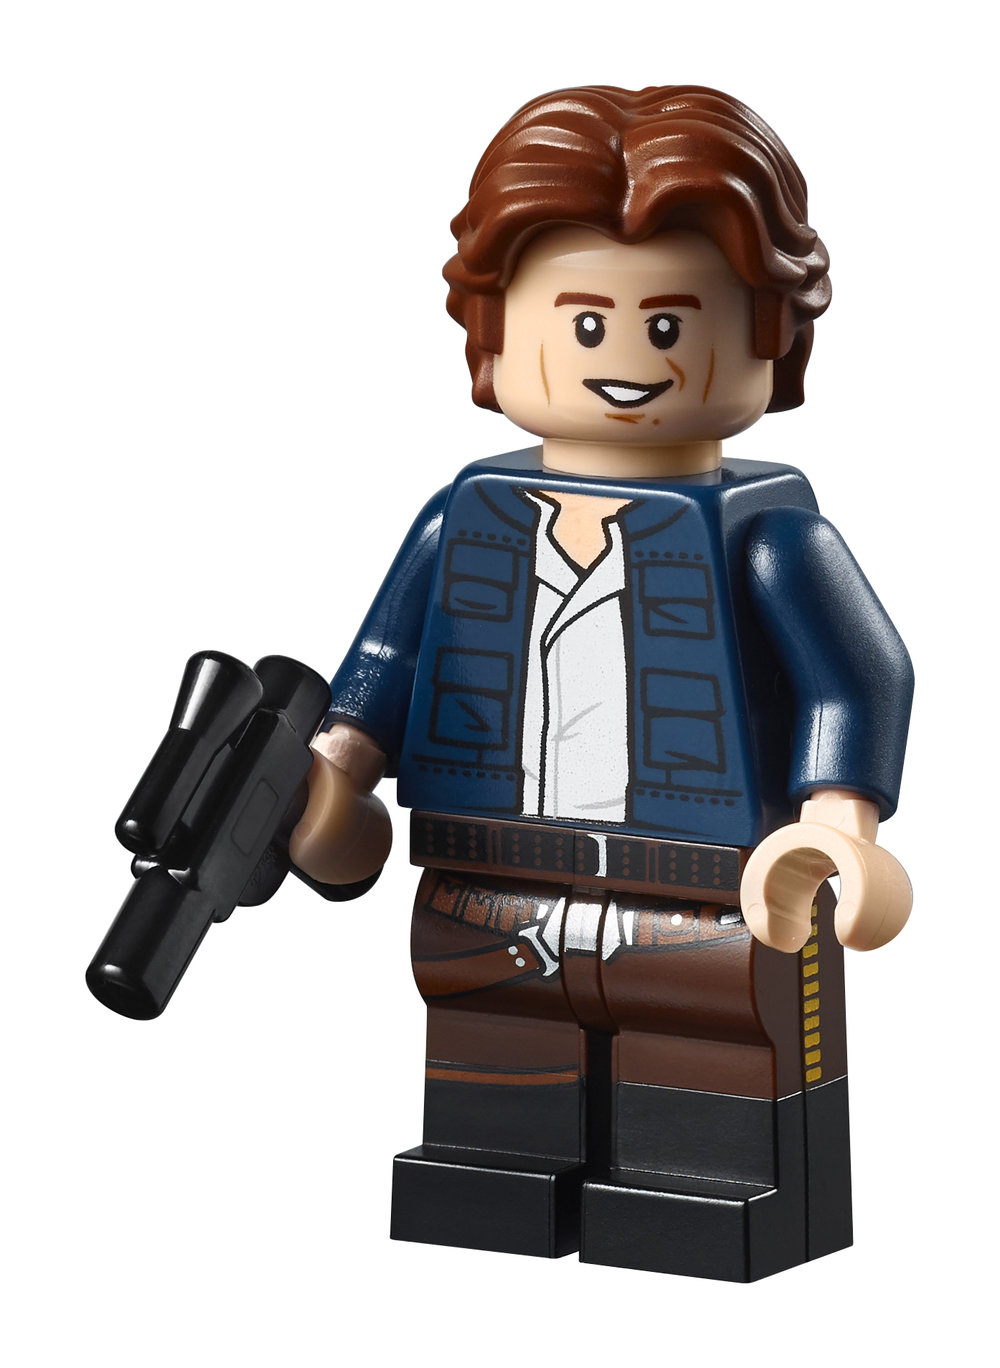 75222_Top_Panel_Minifigure_09.jpg